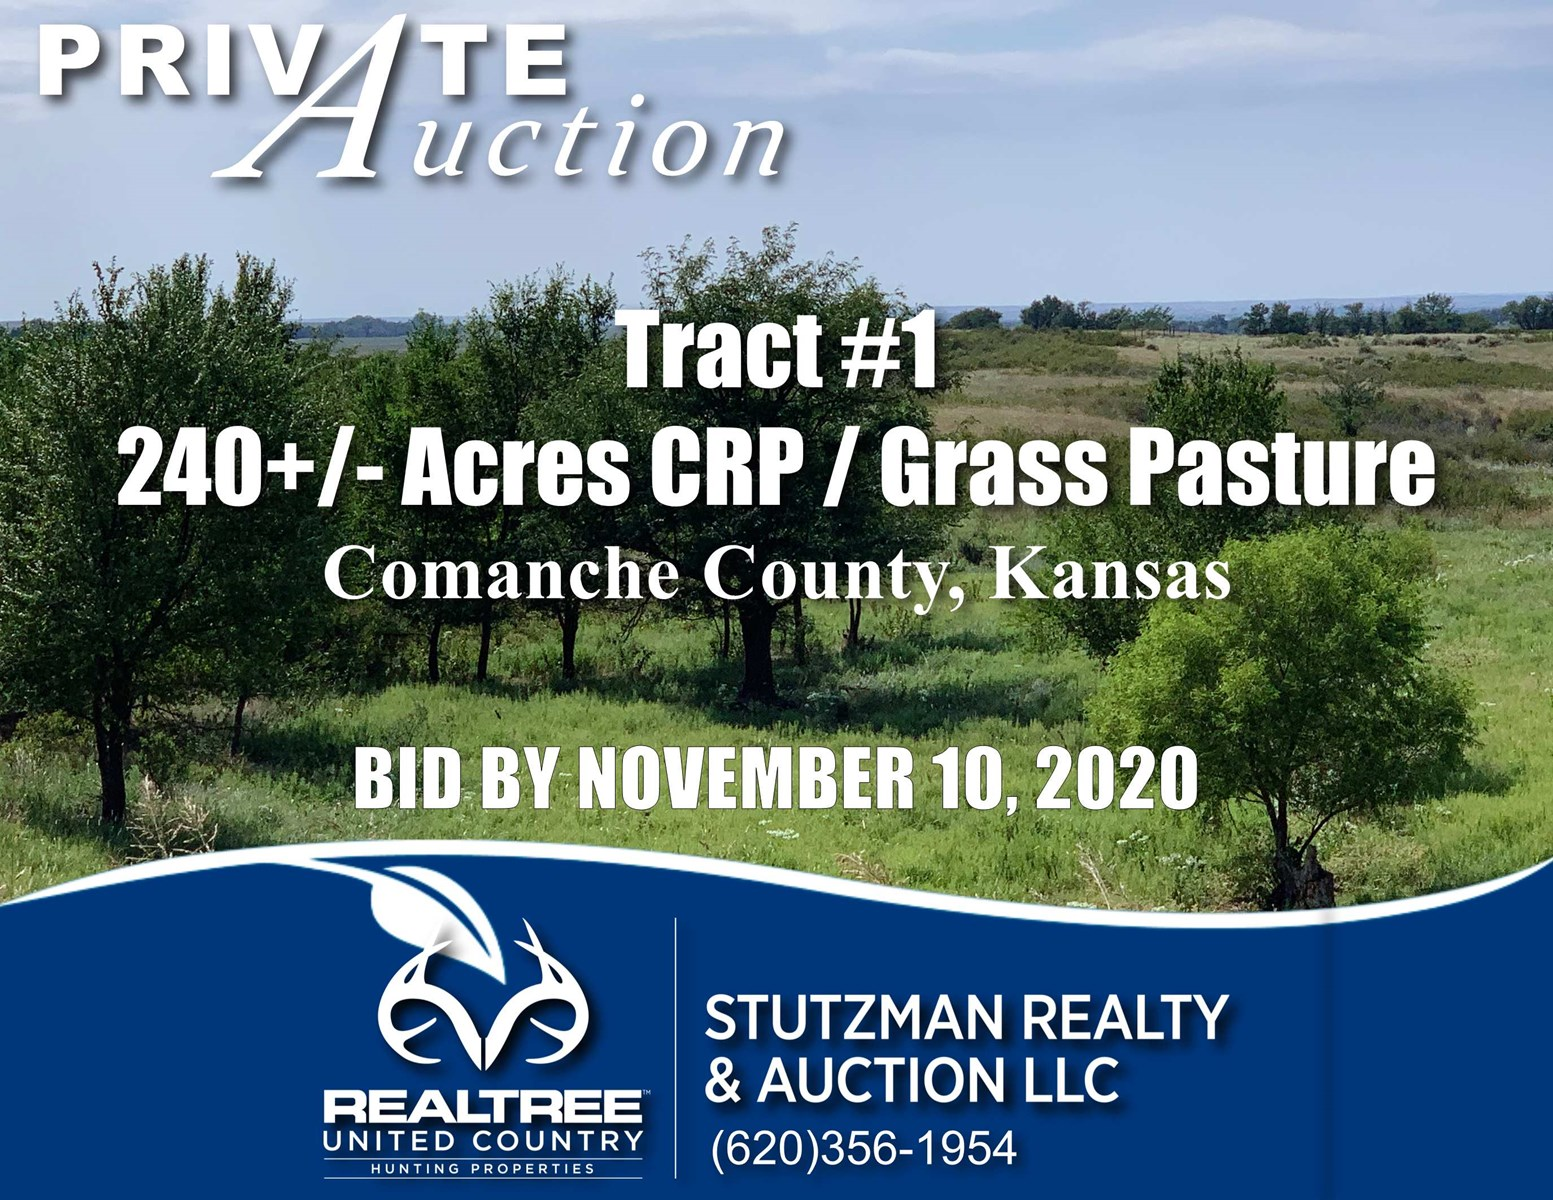 COMANCHE COUNTY, KS ~ 240+/- ACRE ~ PRIVATE AUCTION ~ TR#1